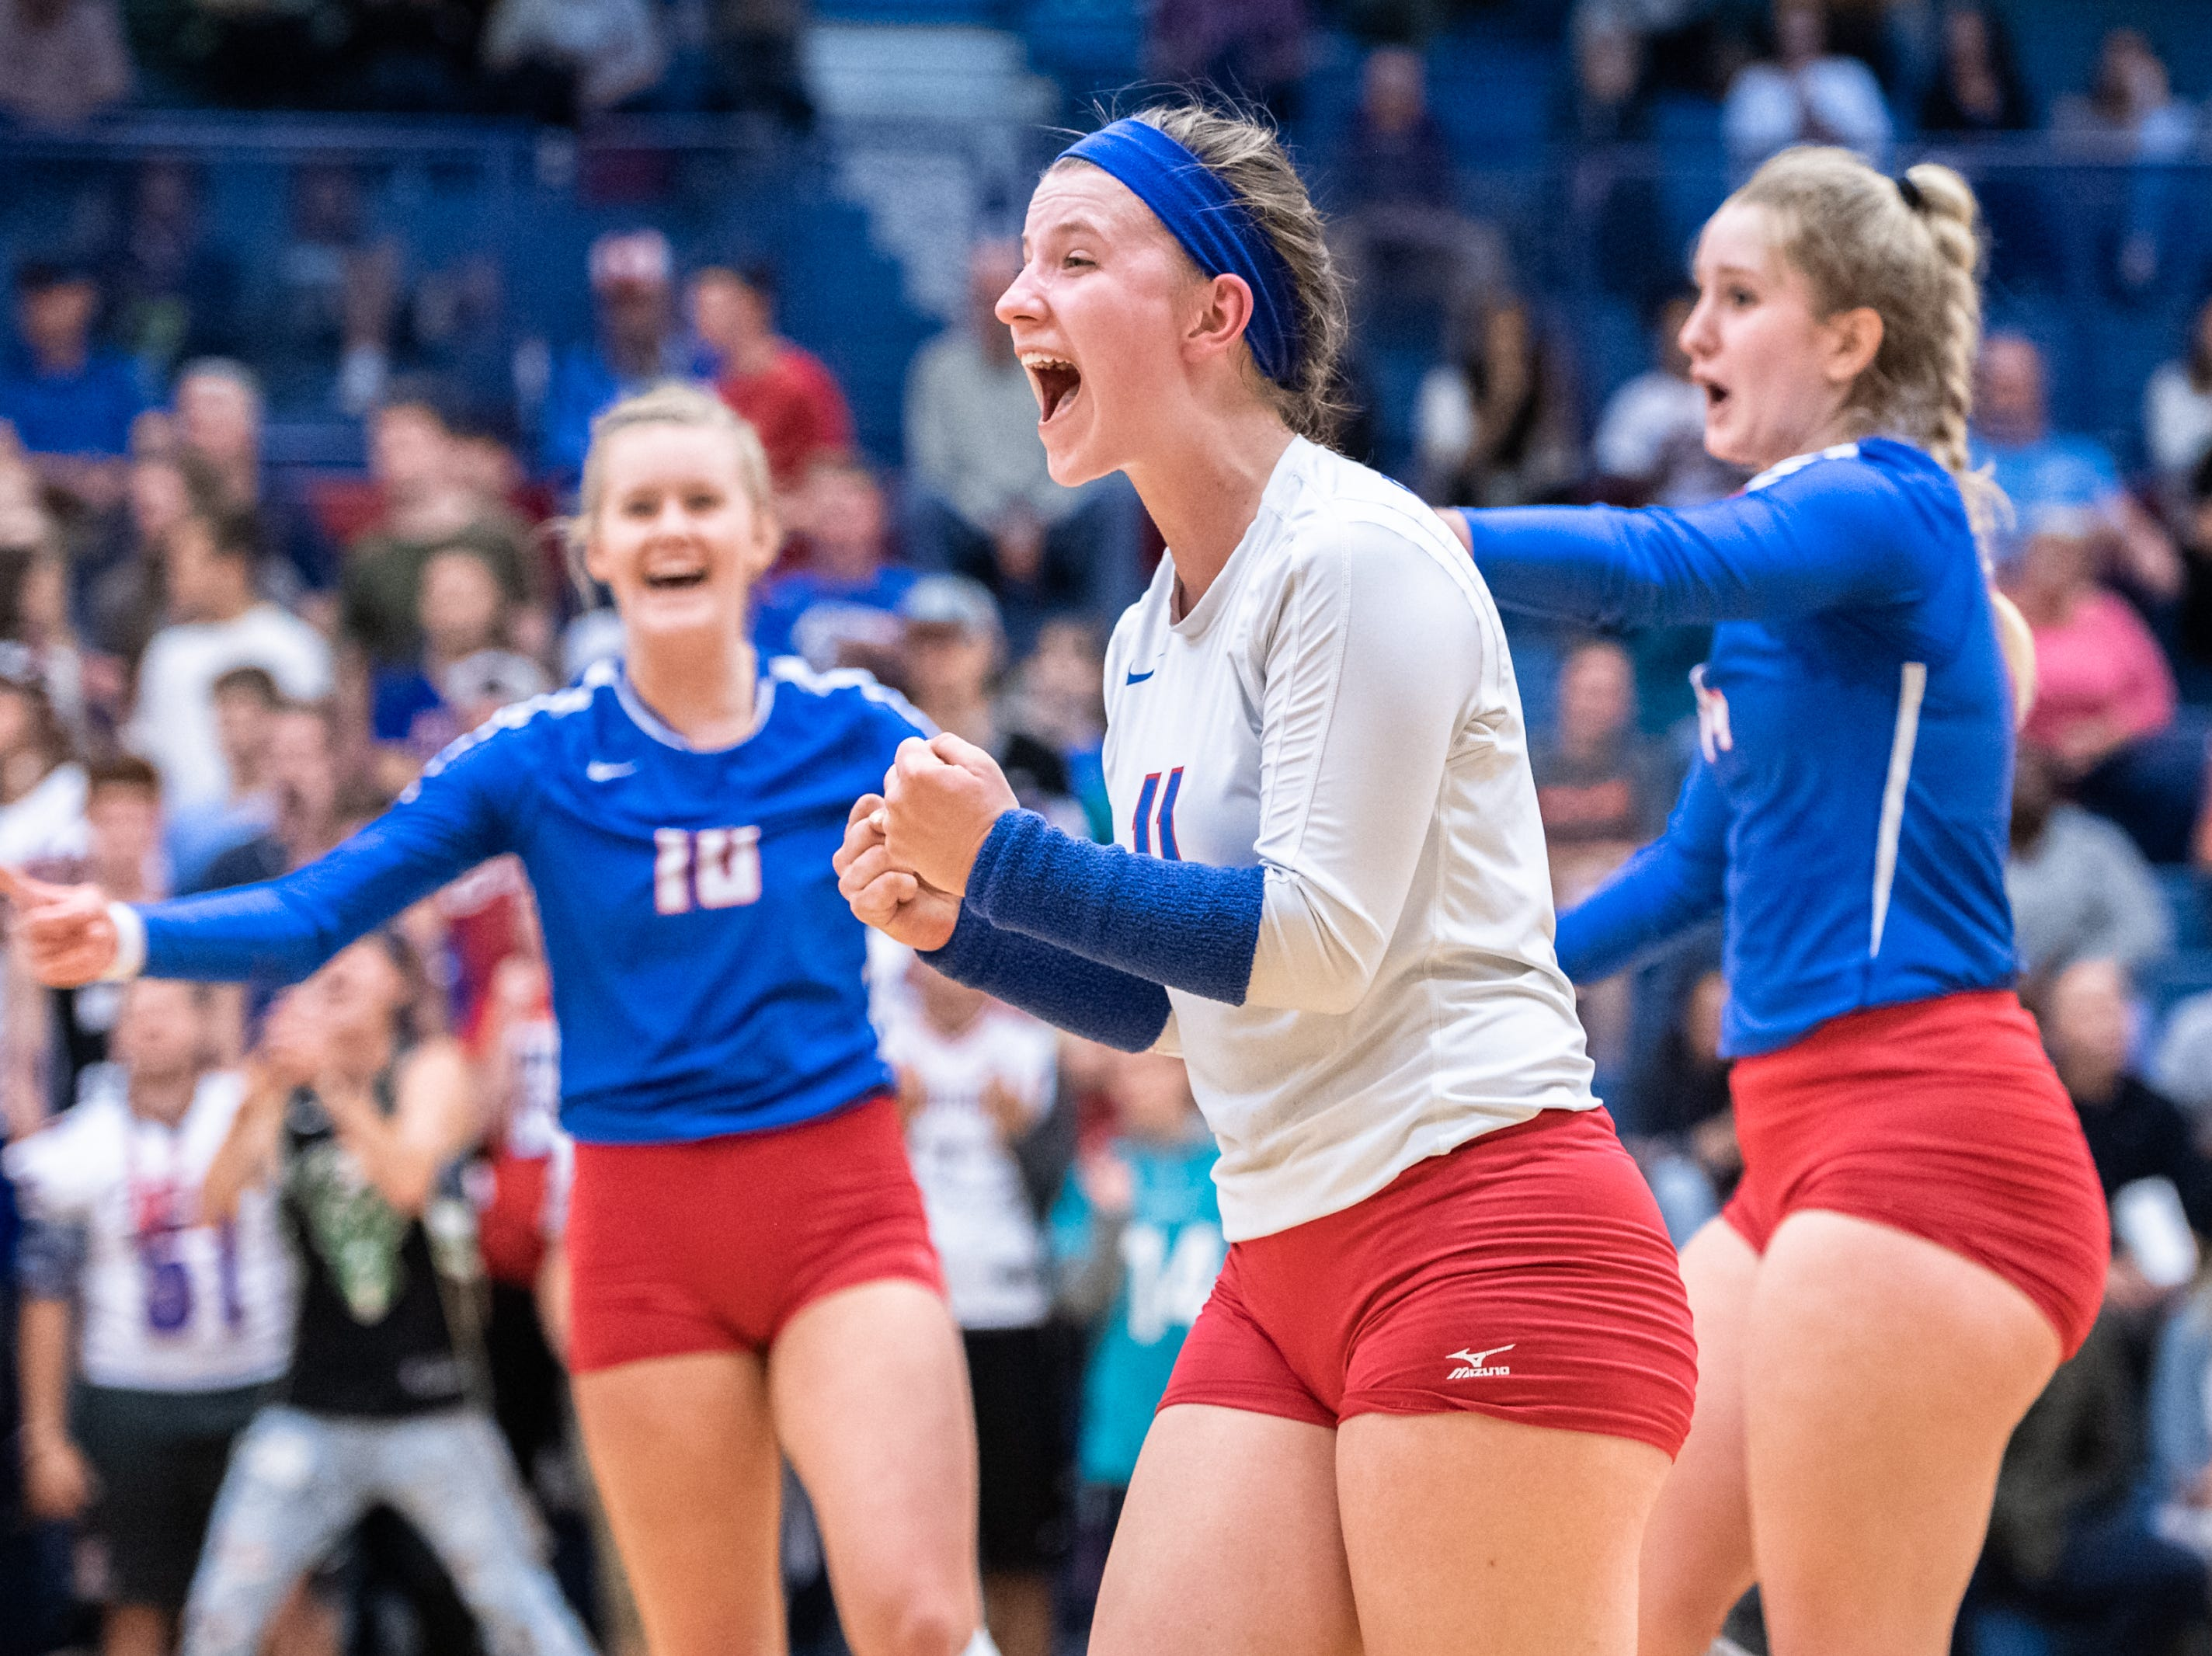 West Henderson's Ashley Downer reacts with Malia Moore and Casey Brown to a point scored during their WMAC tournament championship volleyball game against Reynolds Oct. 18, 2018.